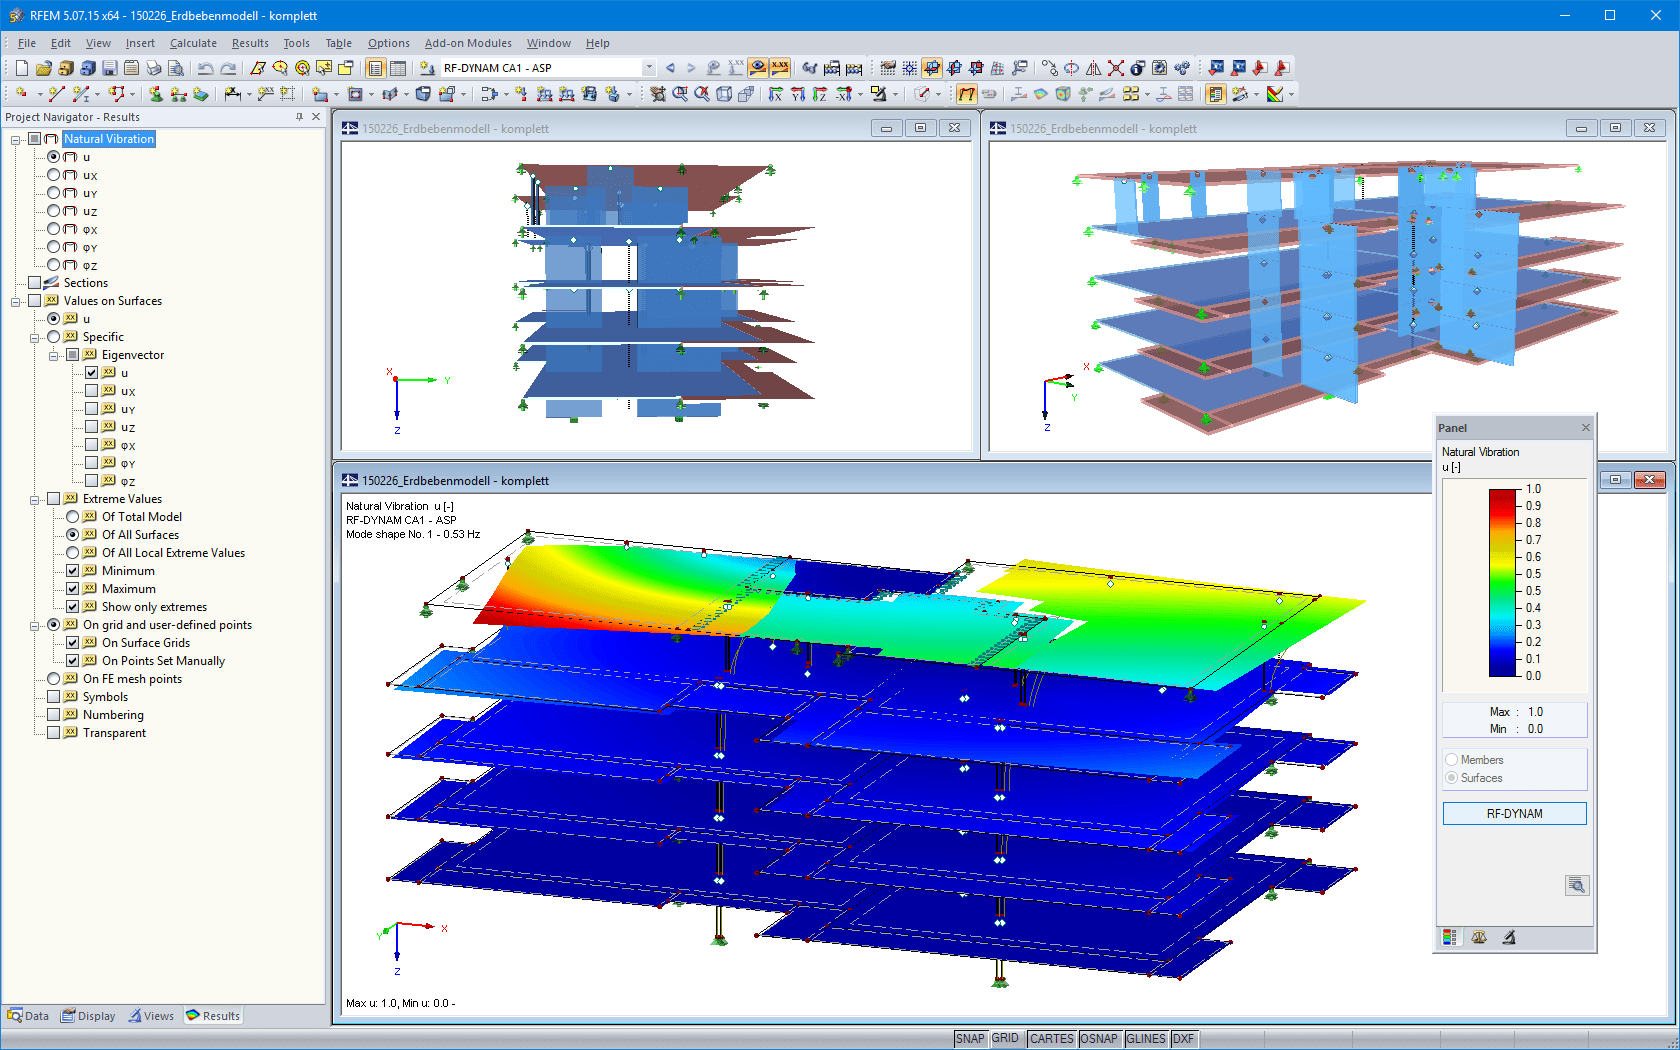 3D models and natural vibration mode shape of the building in RFEM (© Pirmin Jung)